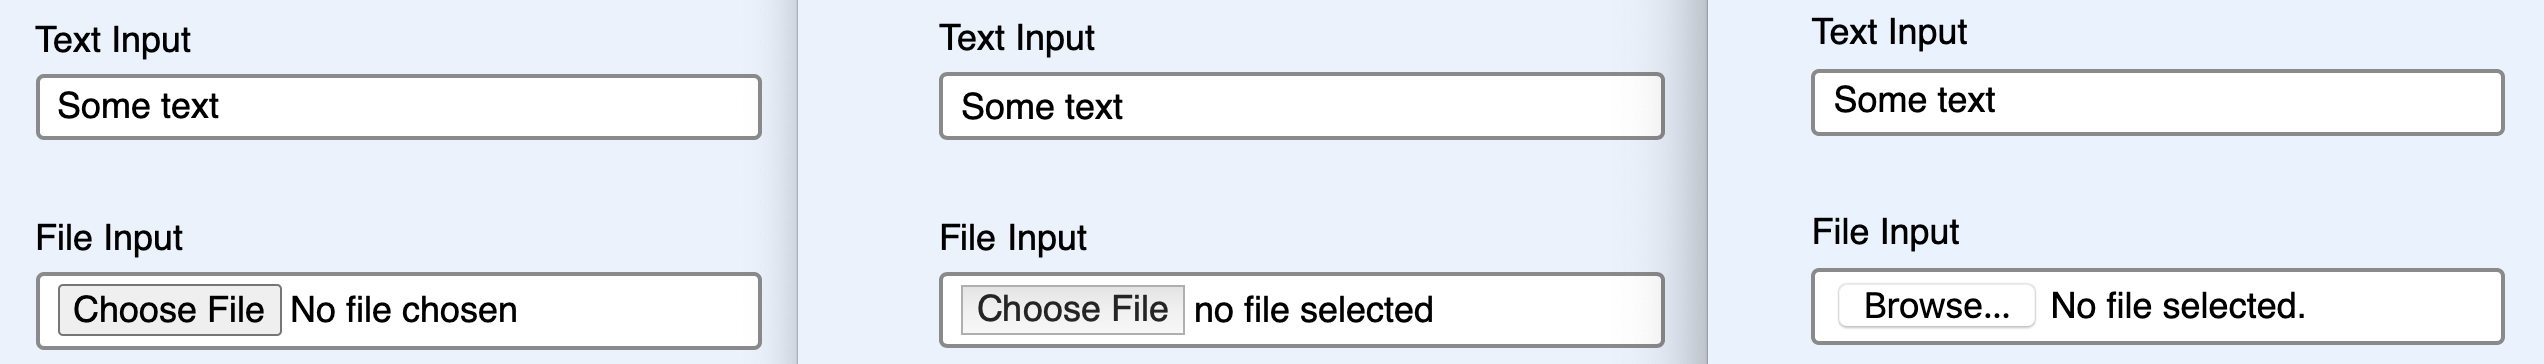 text input field across browsers compared to file input